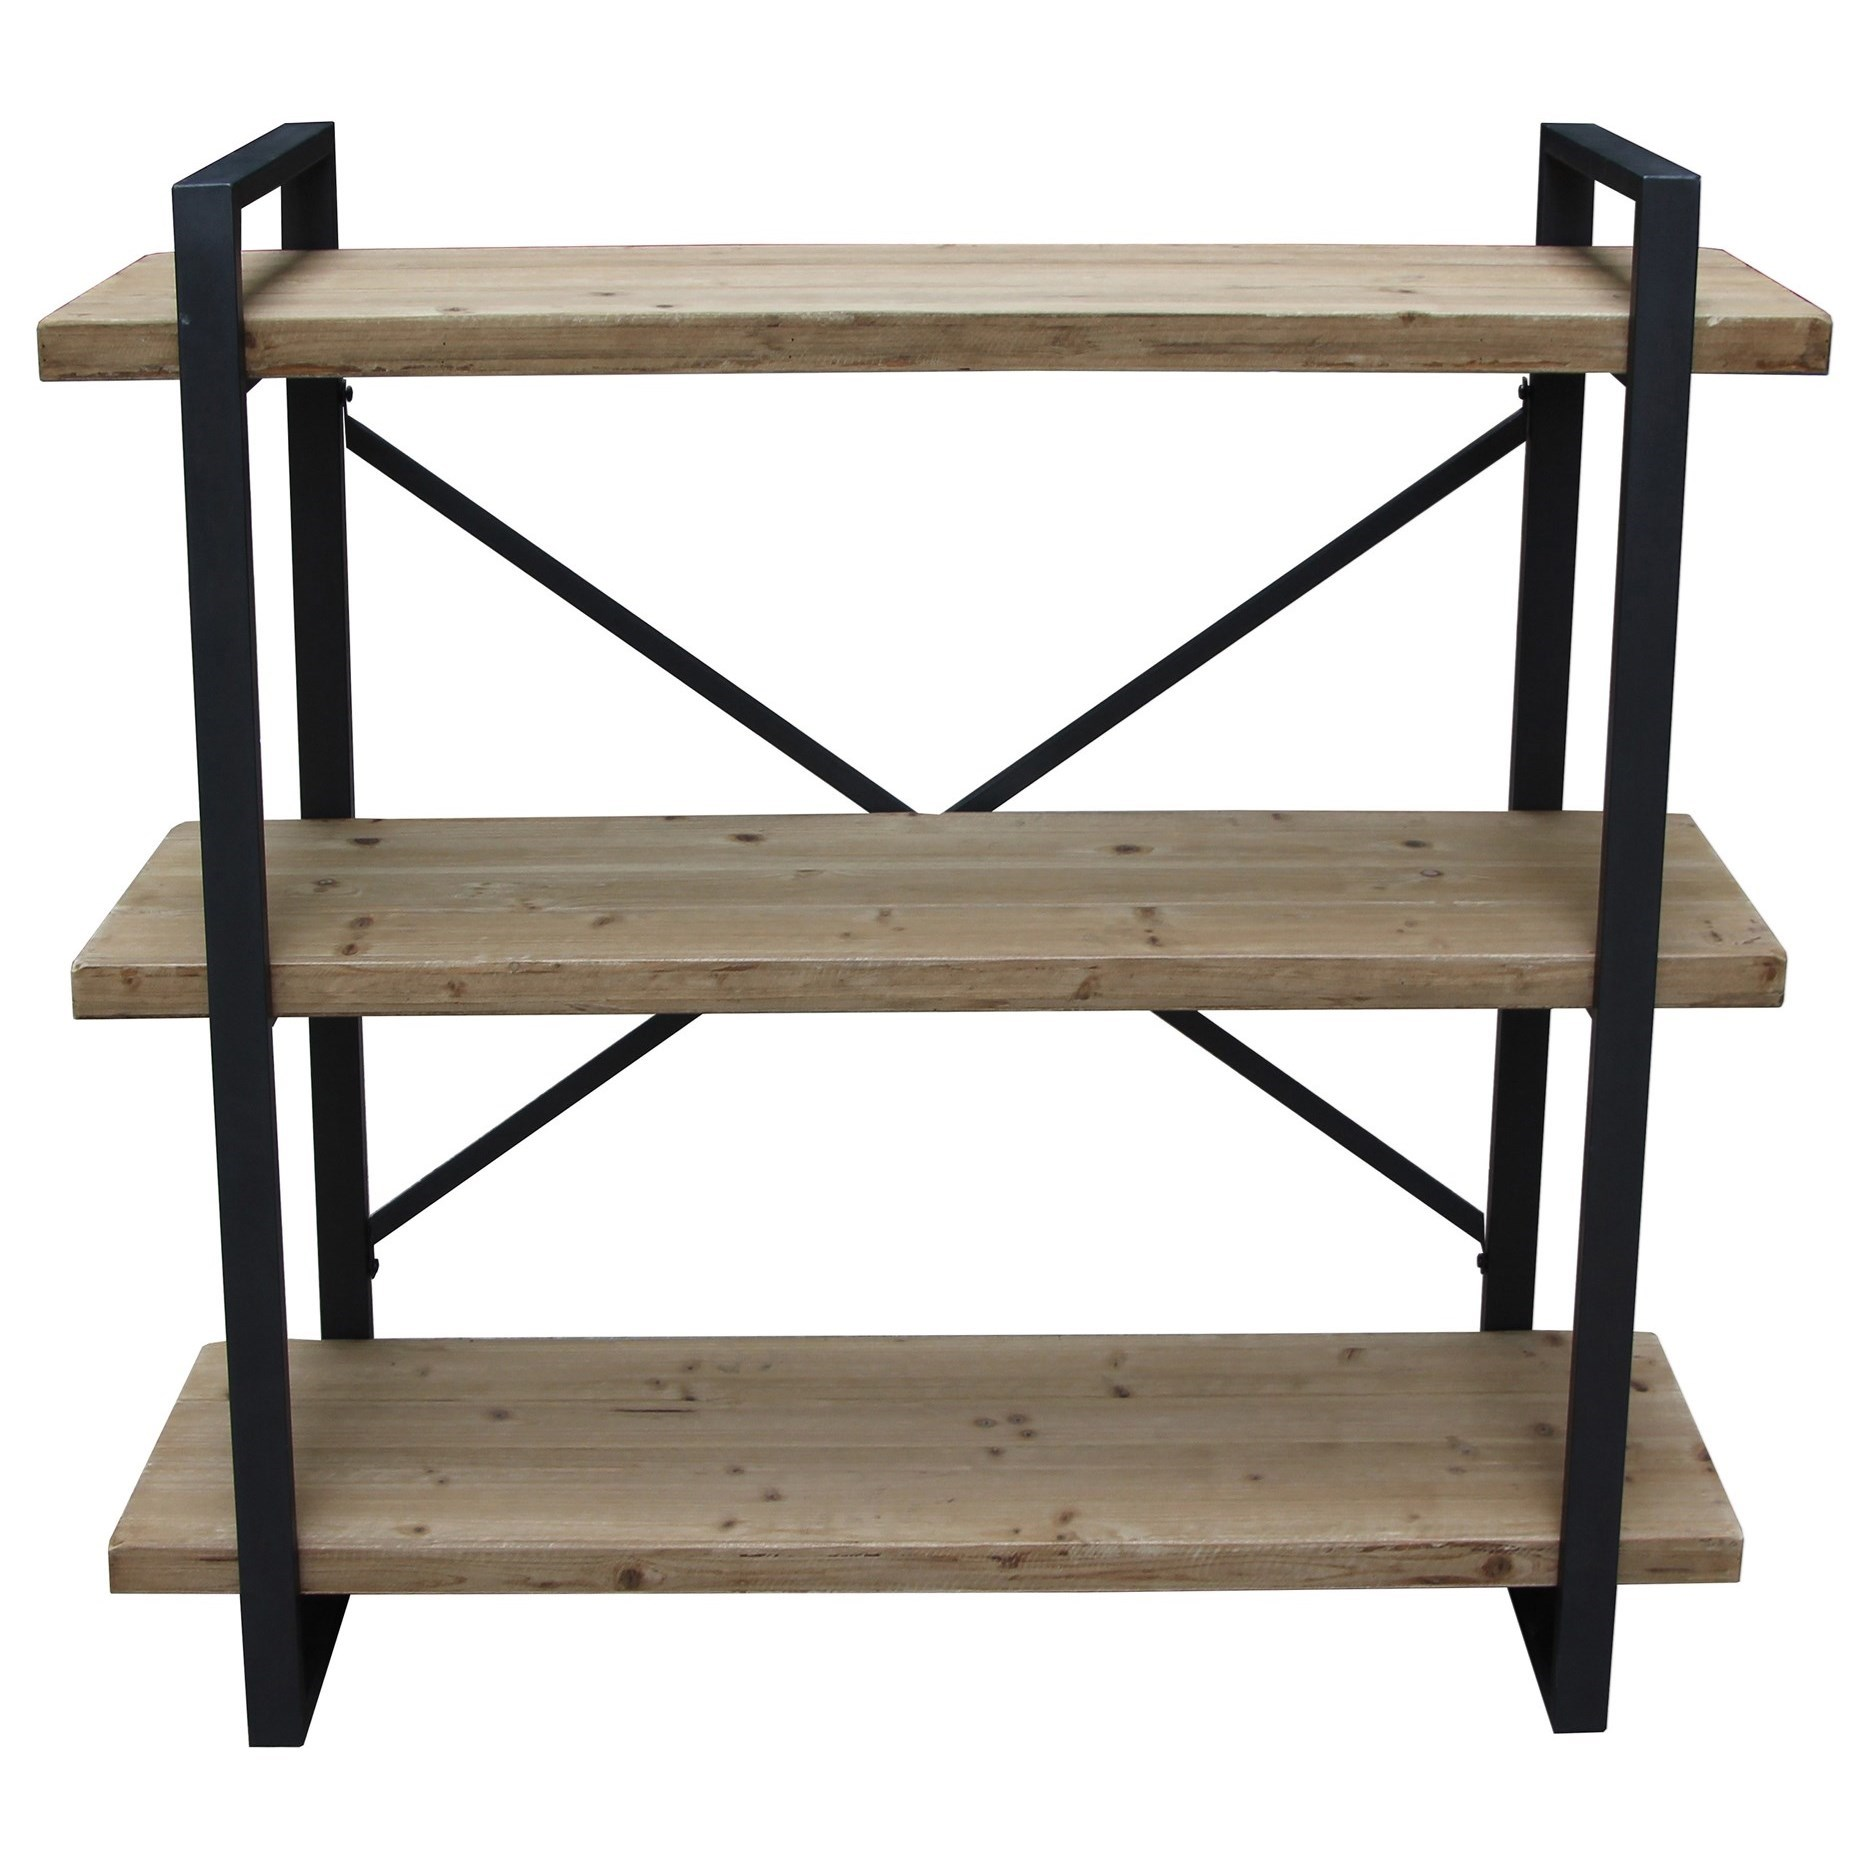 3 Level Shelf Natural